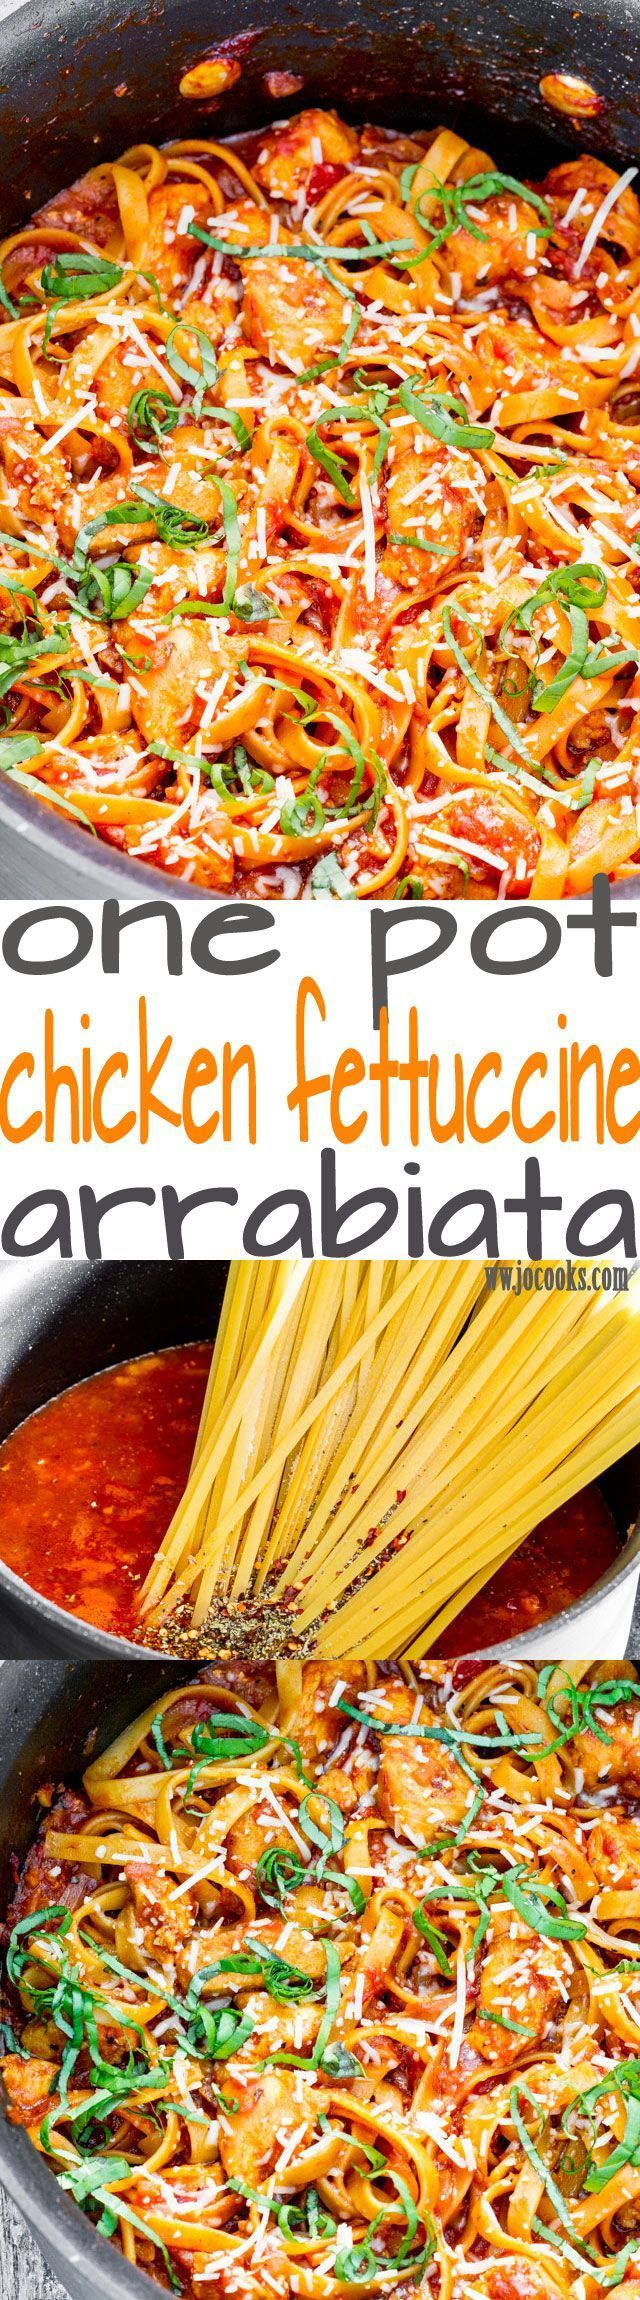 "One Pot Chicken Fettuccine Arrabiata - the name says it all, ""angry"" chicken. This fettuccine packs a lot of heat and spice and it's super delicious!"